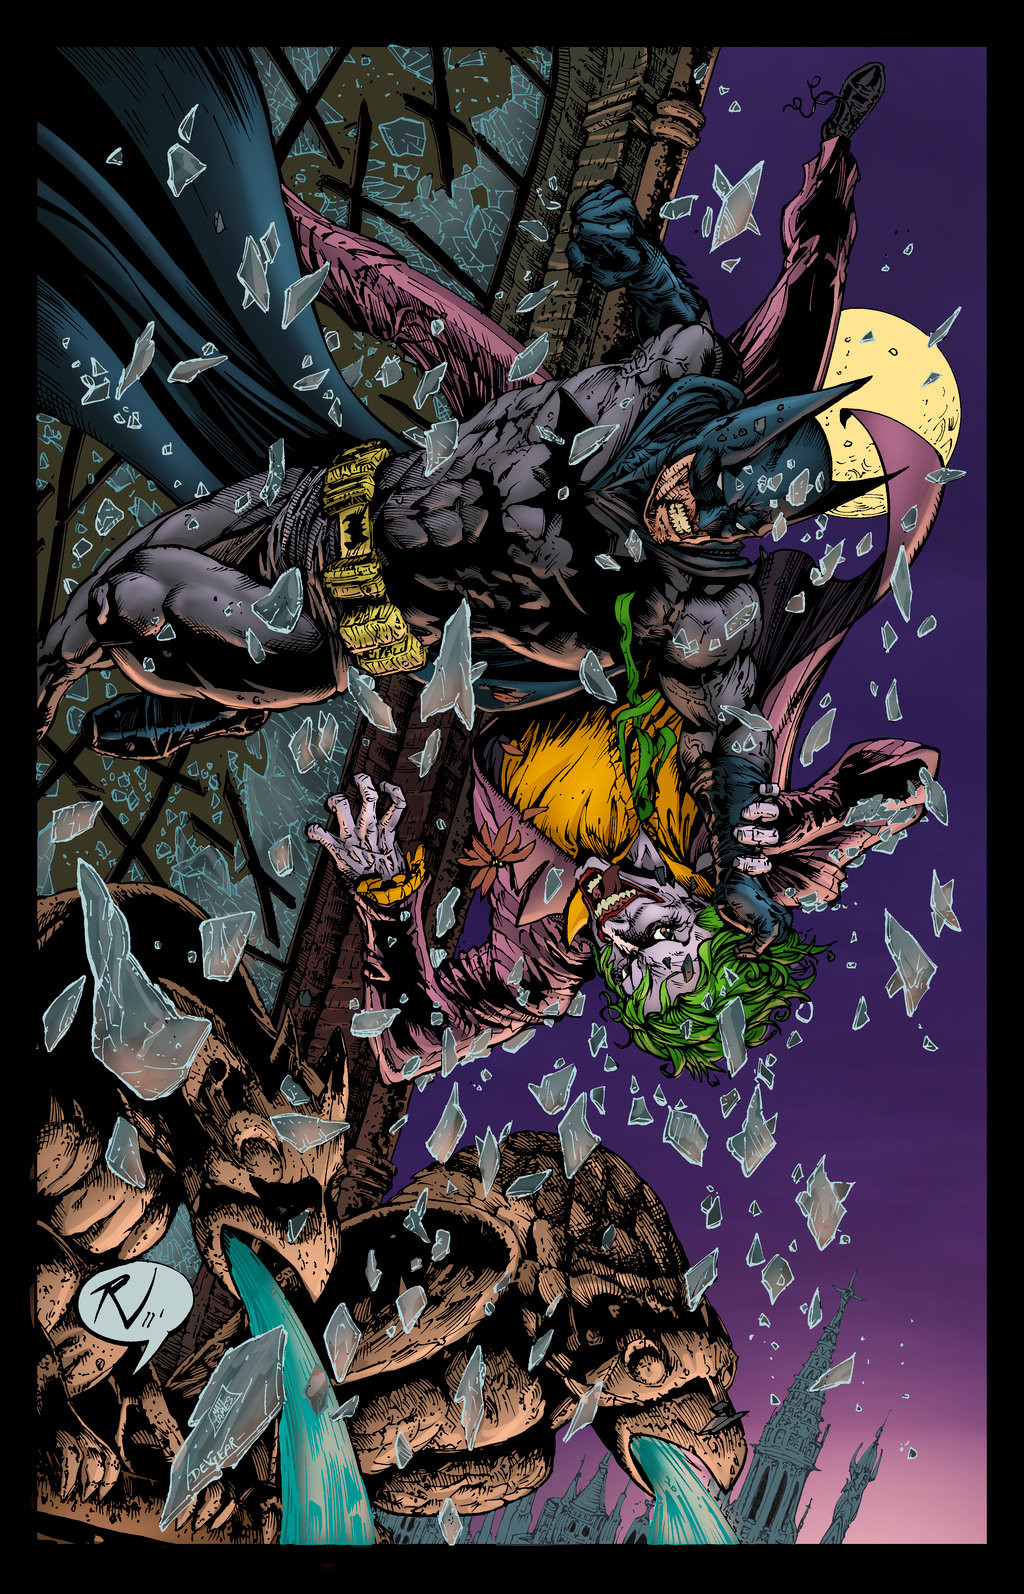 Matt james batman and joker by snakebitartstudio dc67srm